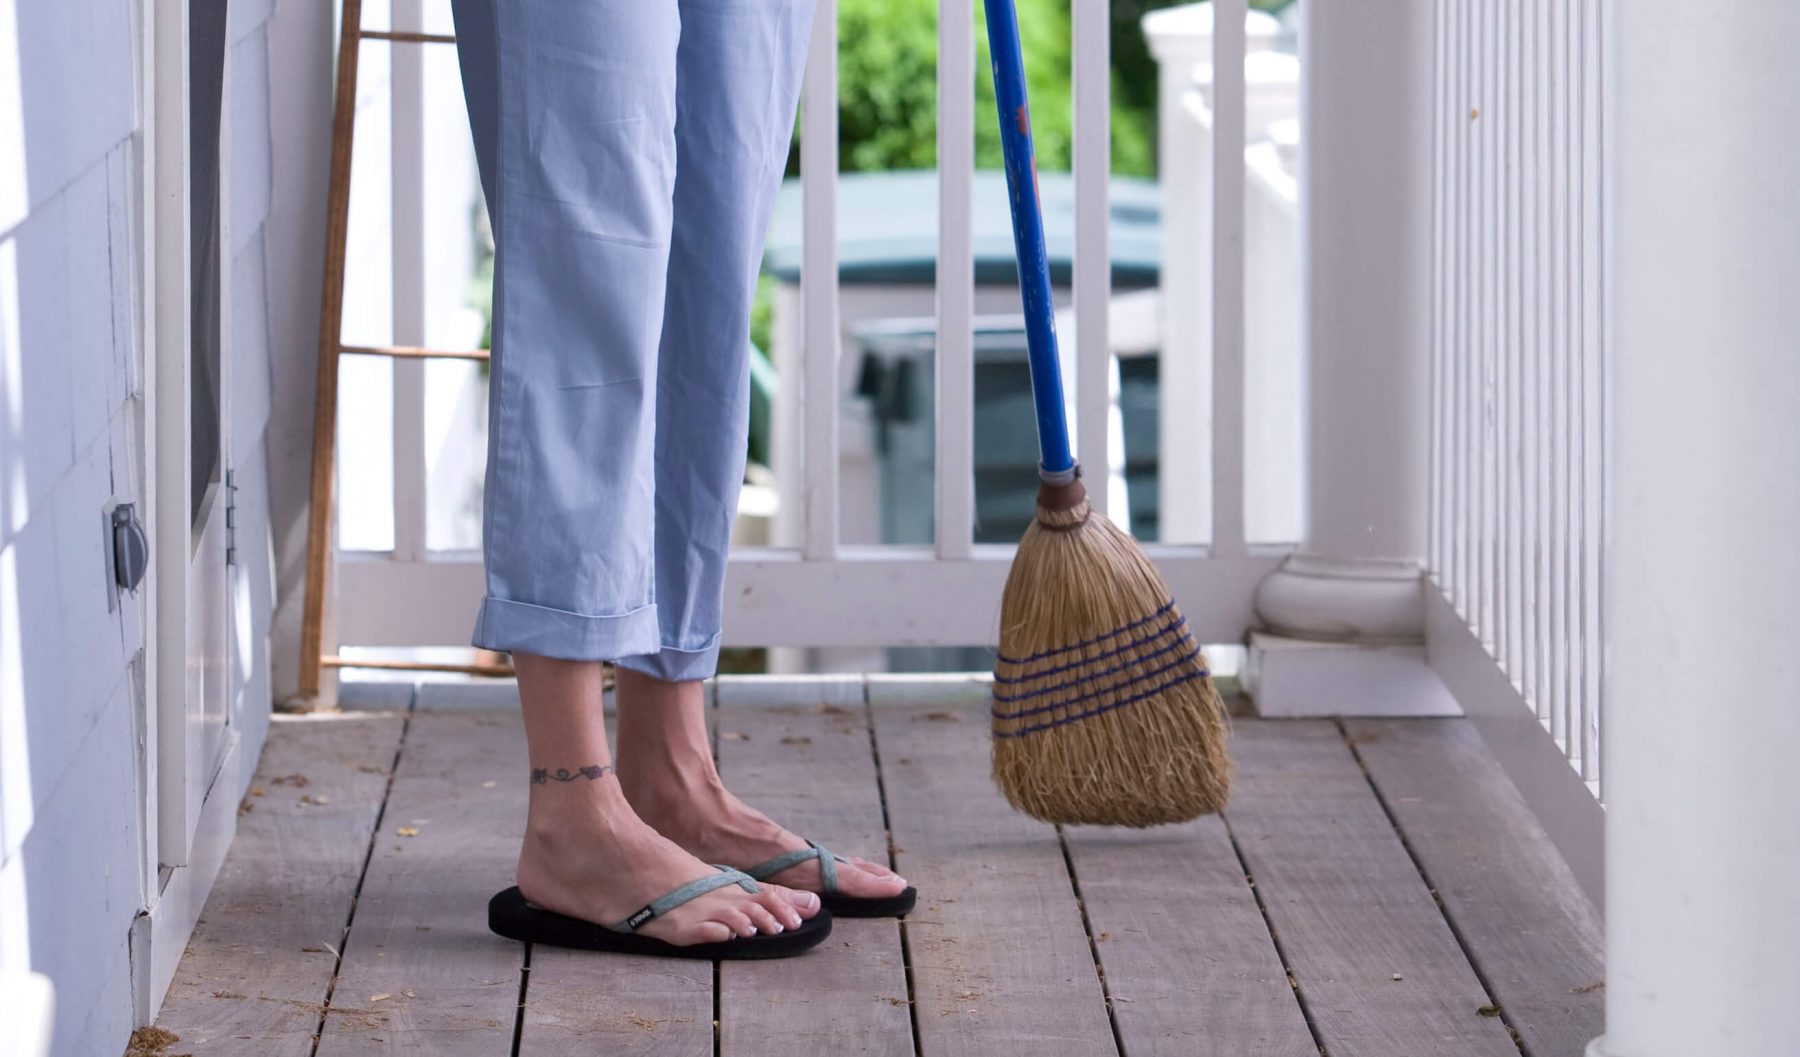 Woman sweeping her porch with a broom.